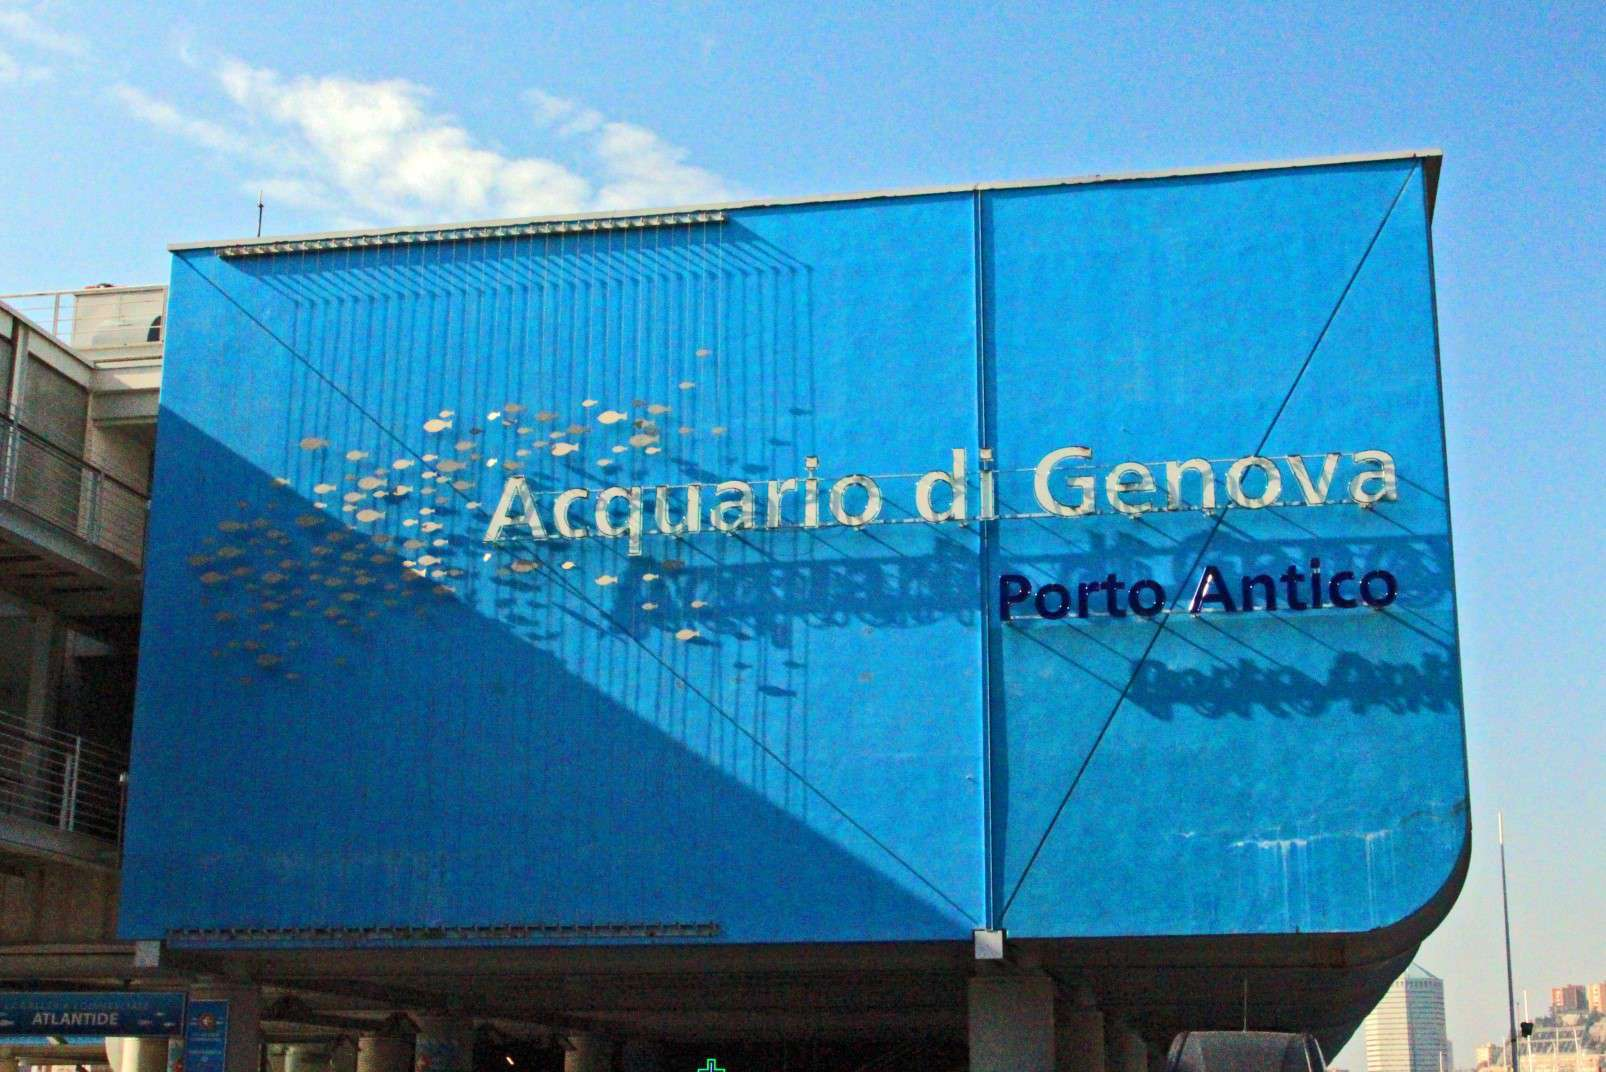 Acquario di Genova, photo courtesy of Marika Bortolami/flickr.com